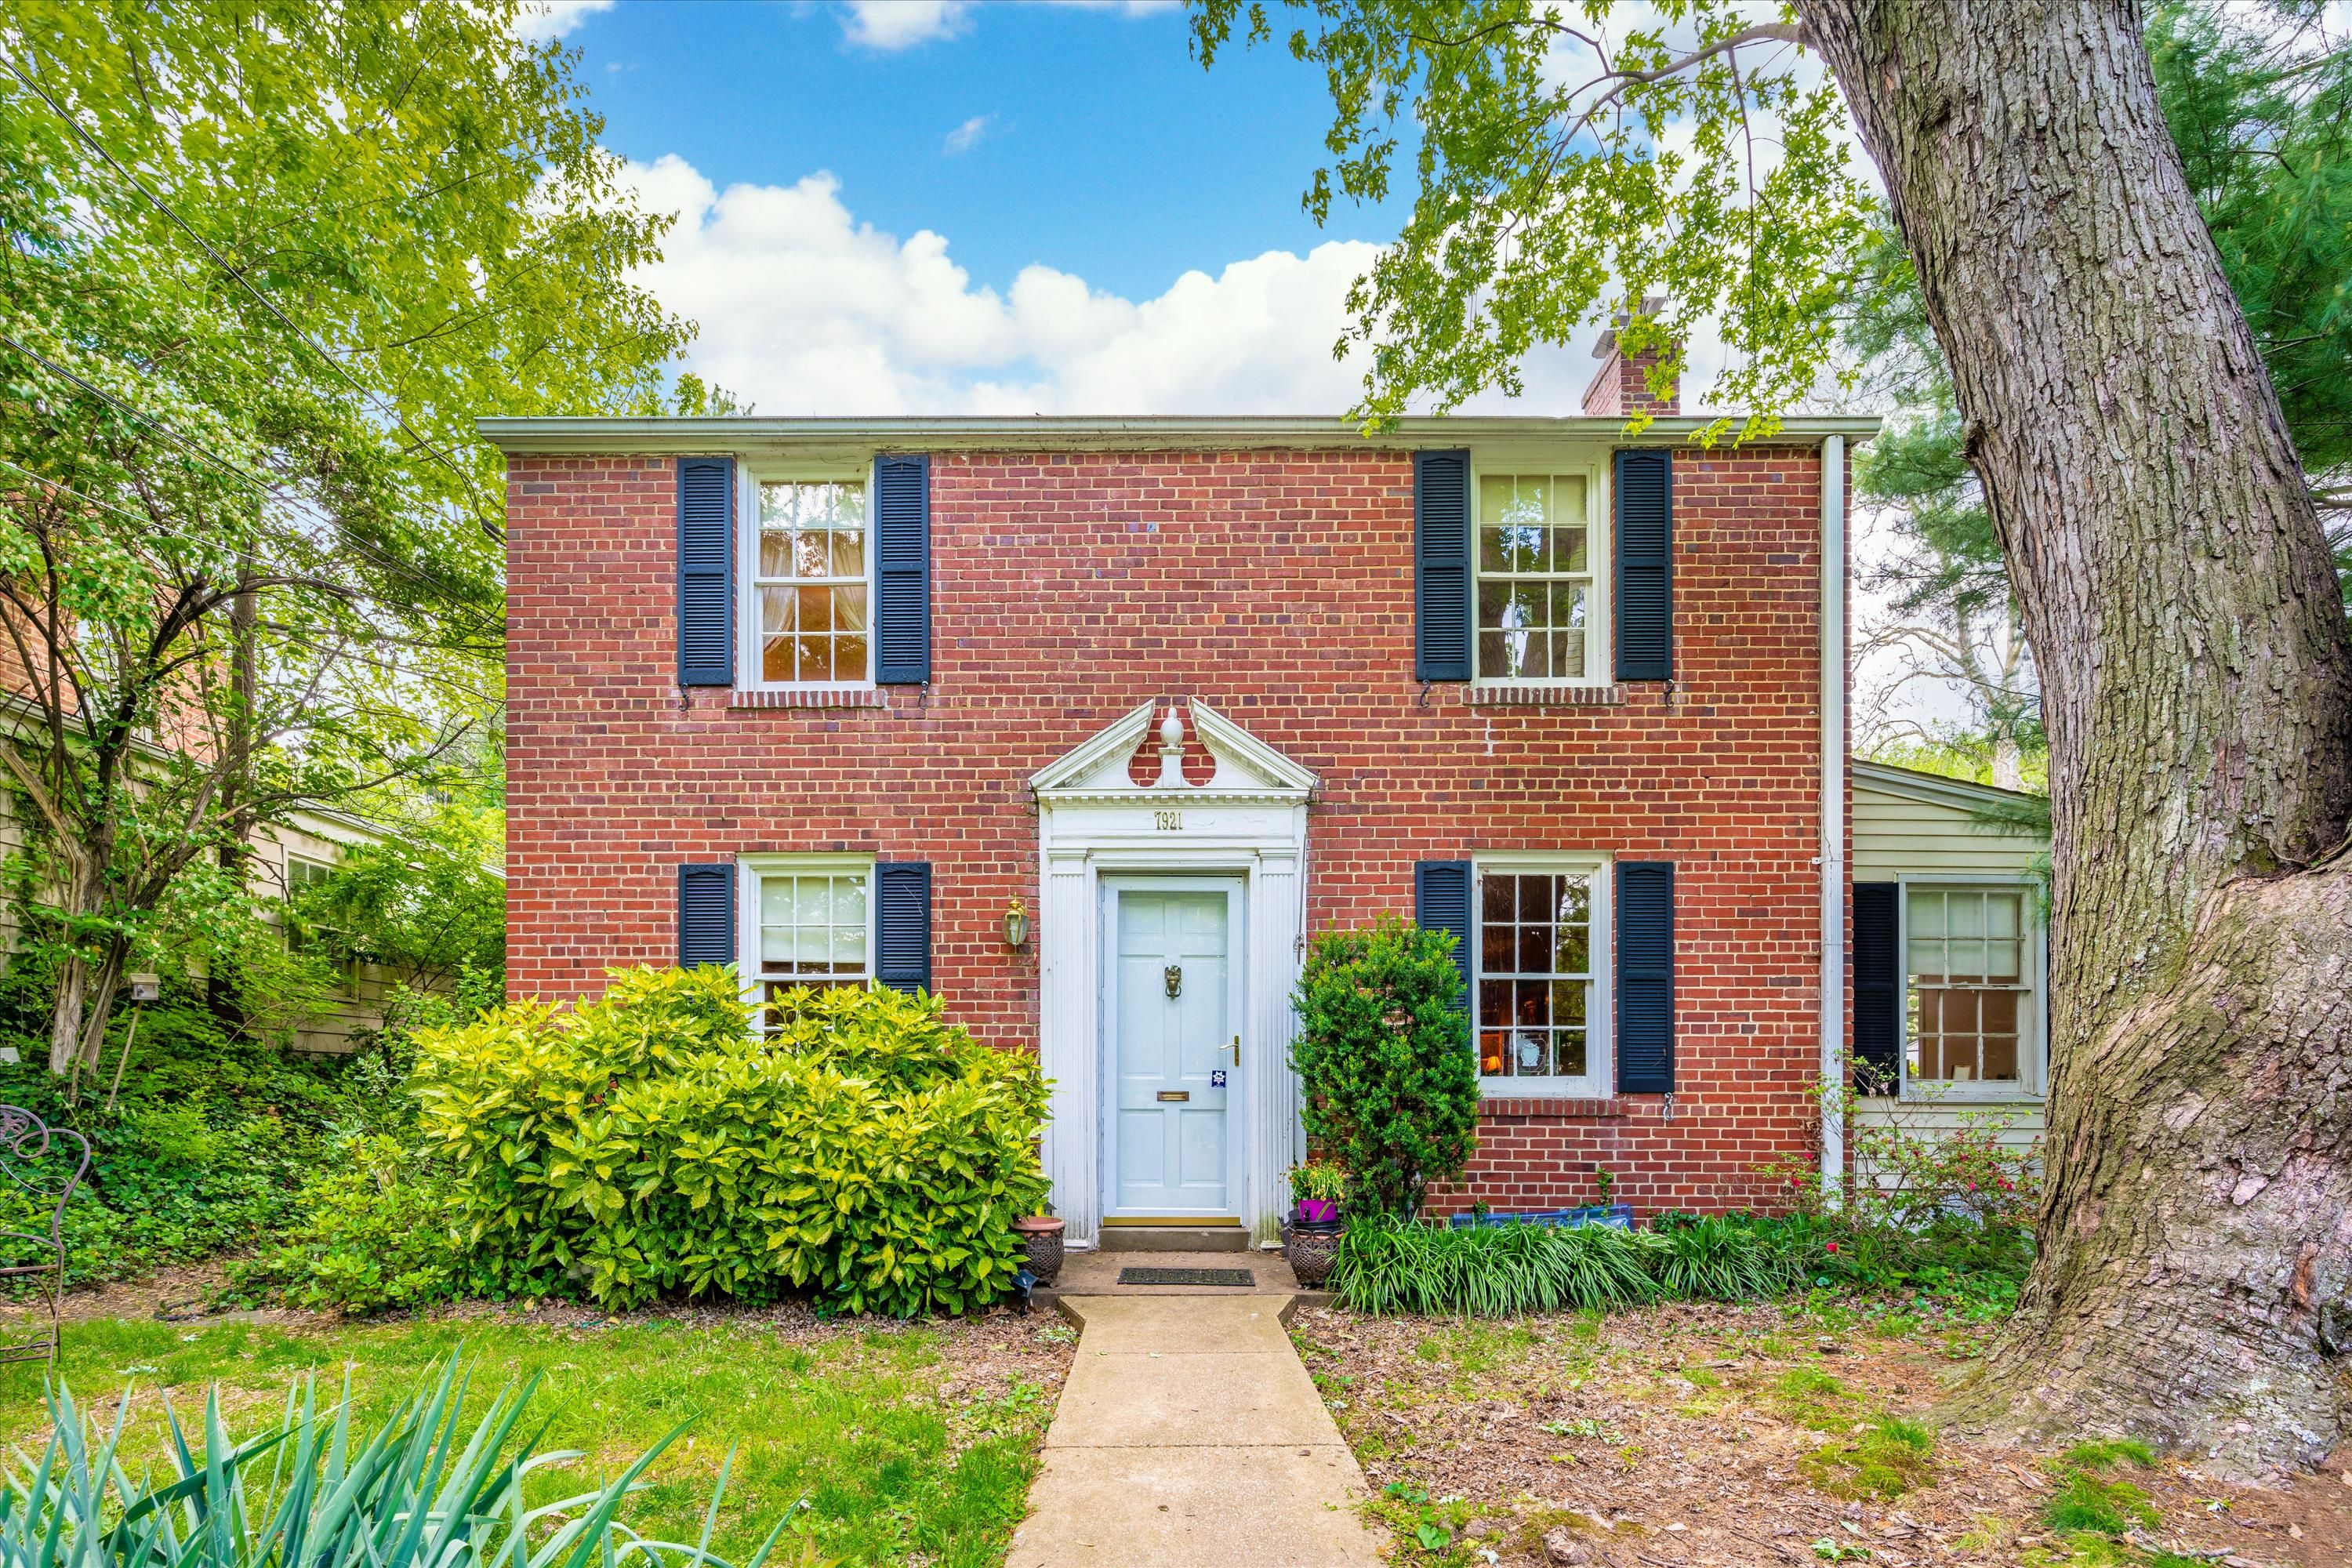 Debbi Atkinson Of Team Reeder With Long Foster Real Estate Just Listed 7921 Chelton Road Bethesda Md 20814 Location Loca In 2020 Bethesda Fee Simple Home Warranty